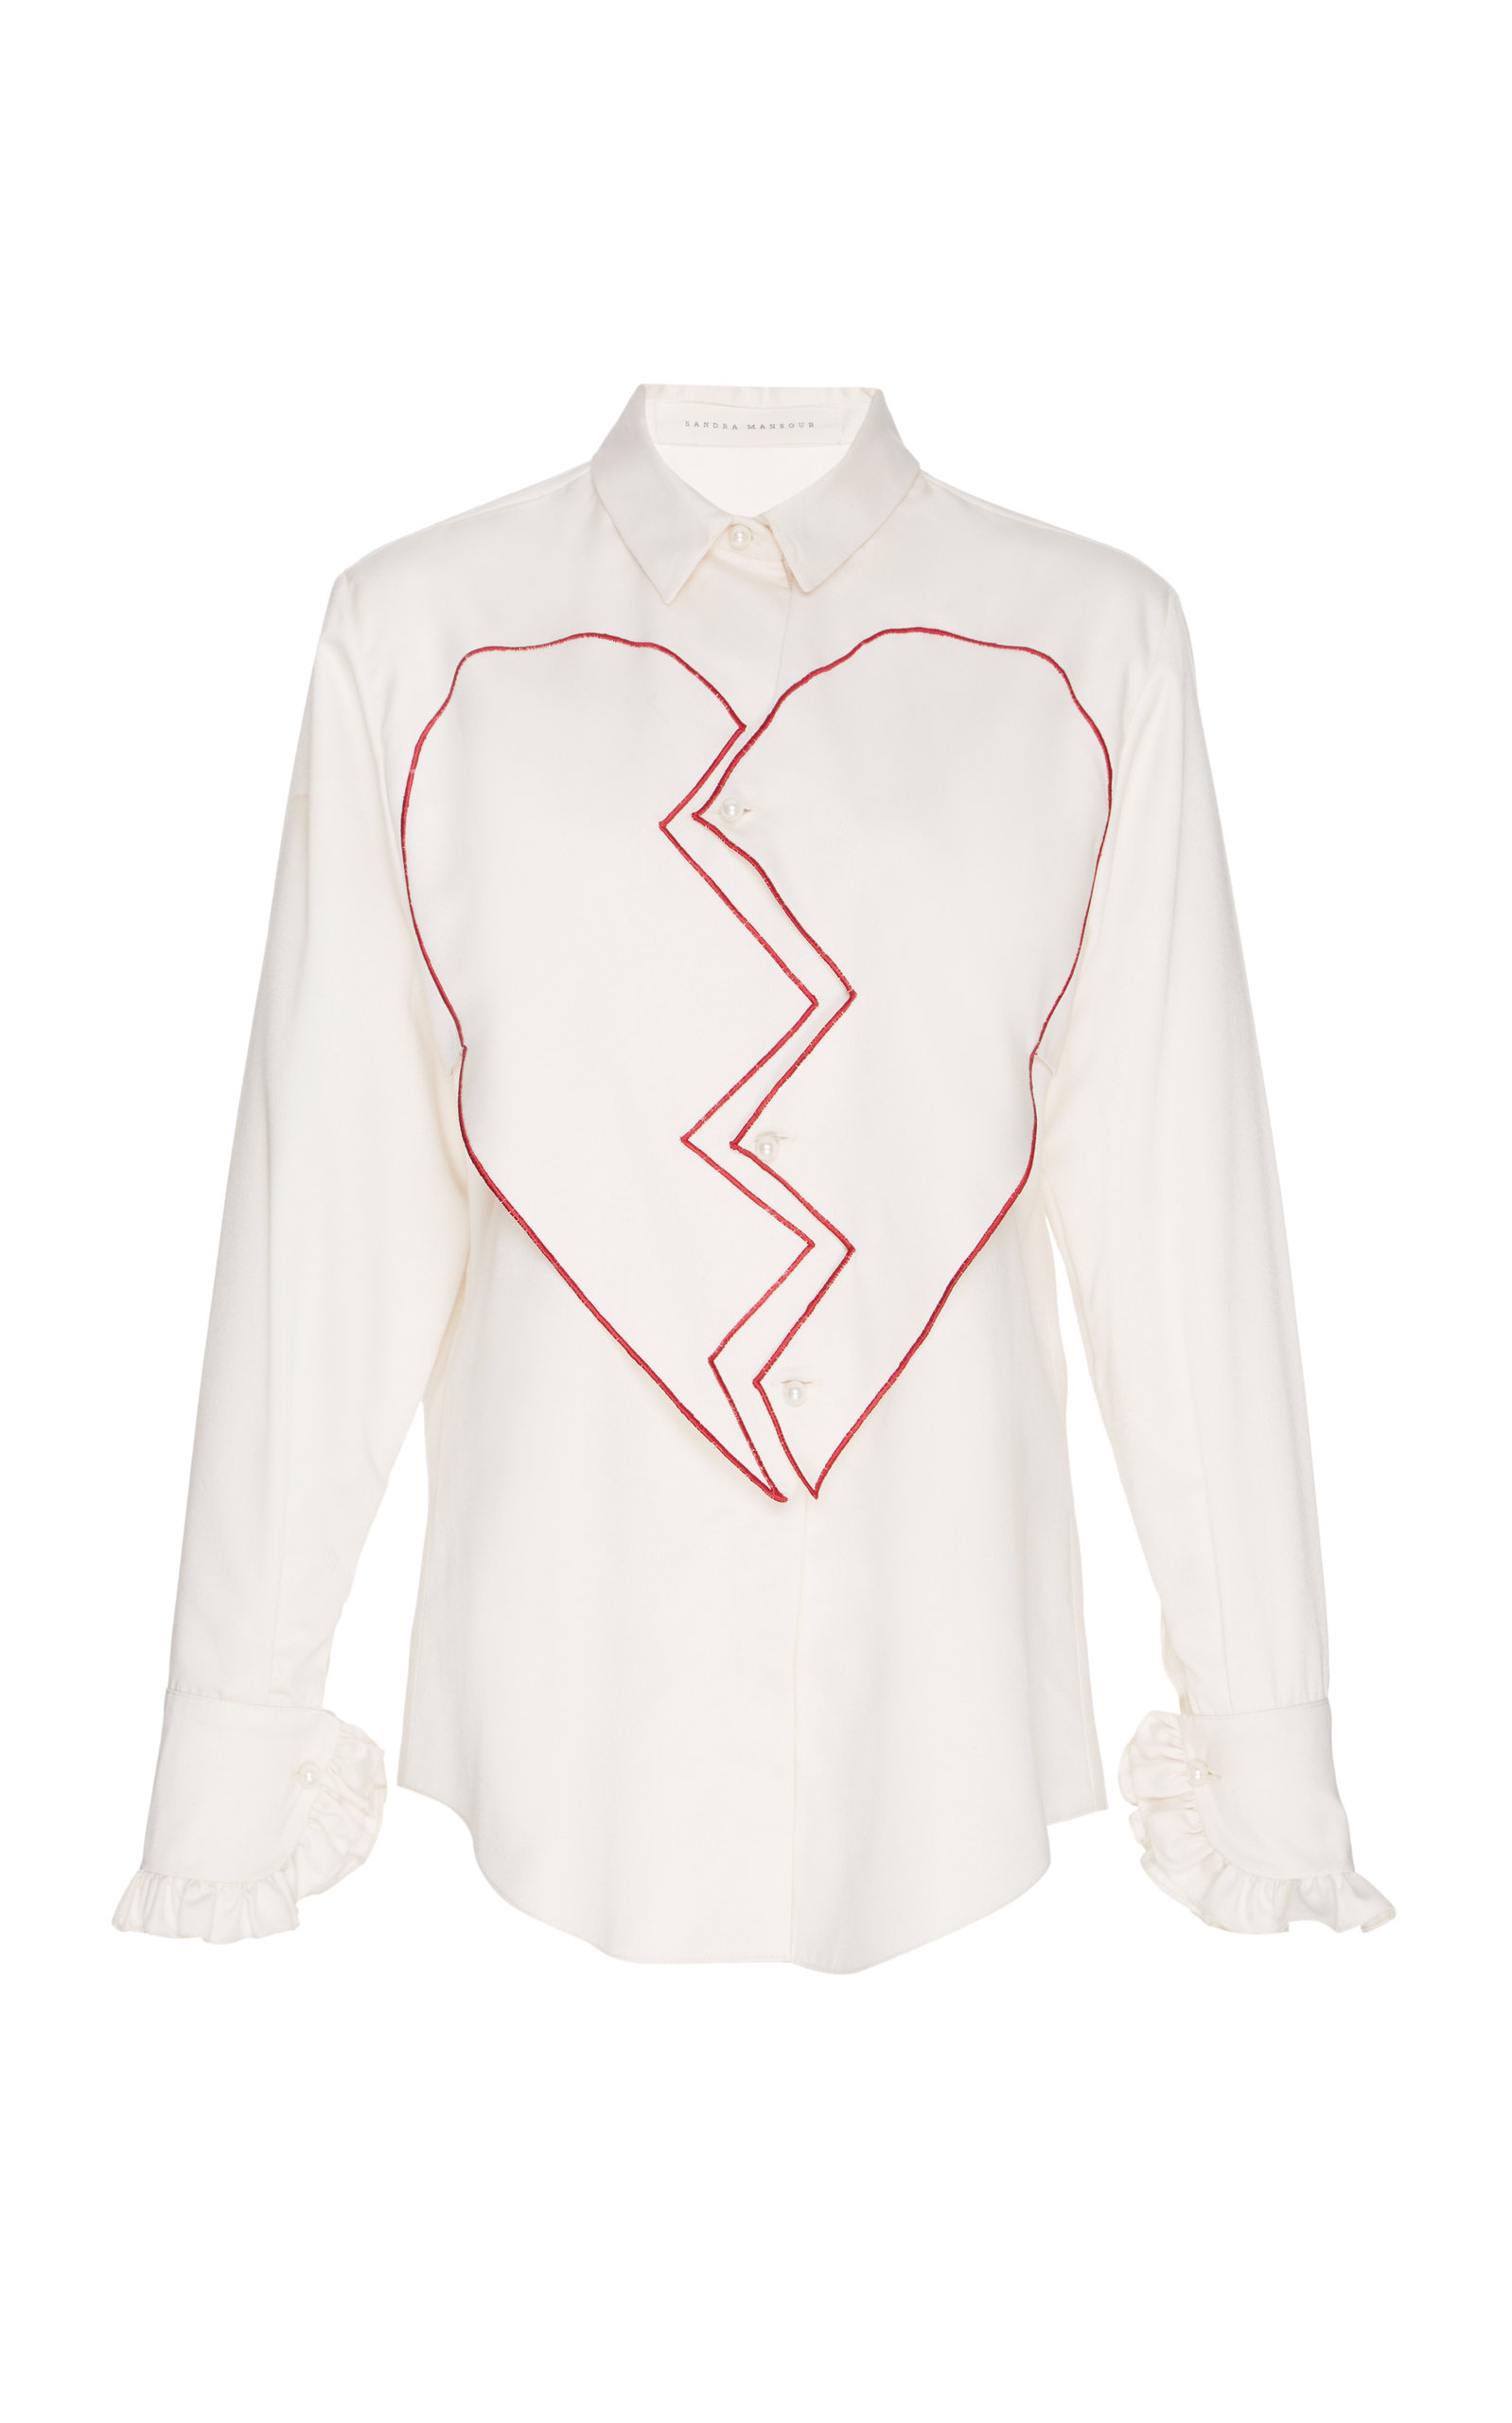 SANDRA MANSOUR Satin Cotton Heart Embroidered Shirt in White